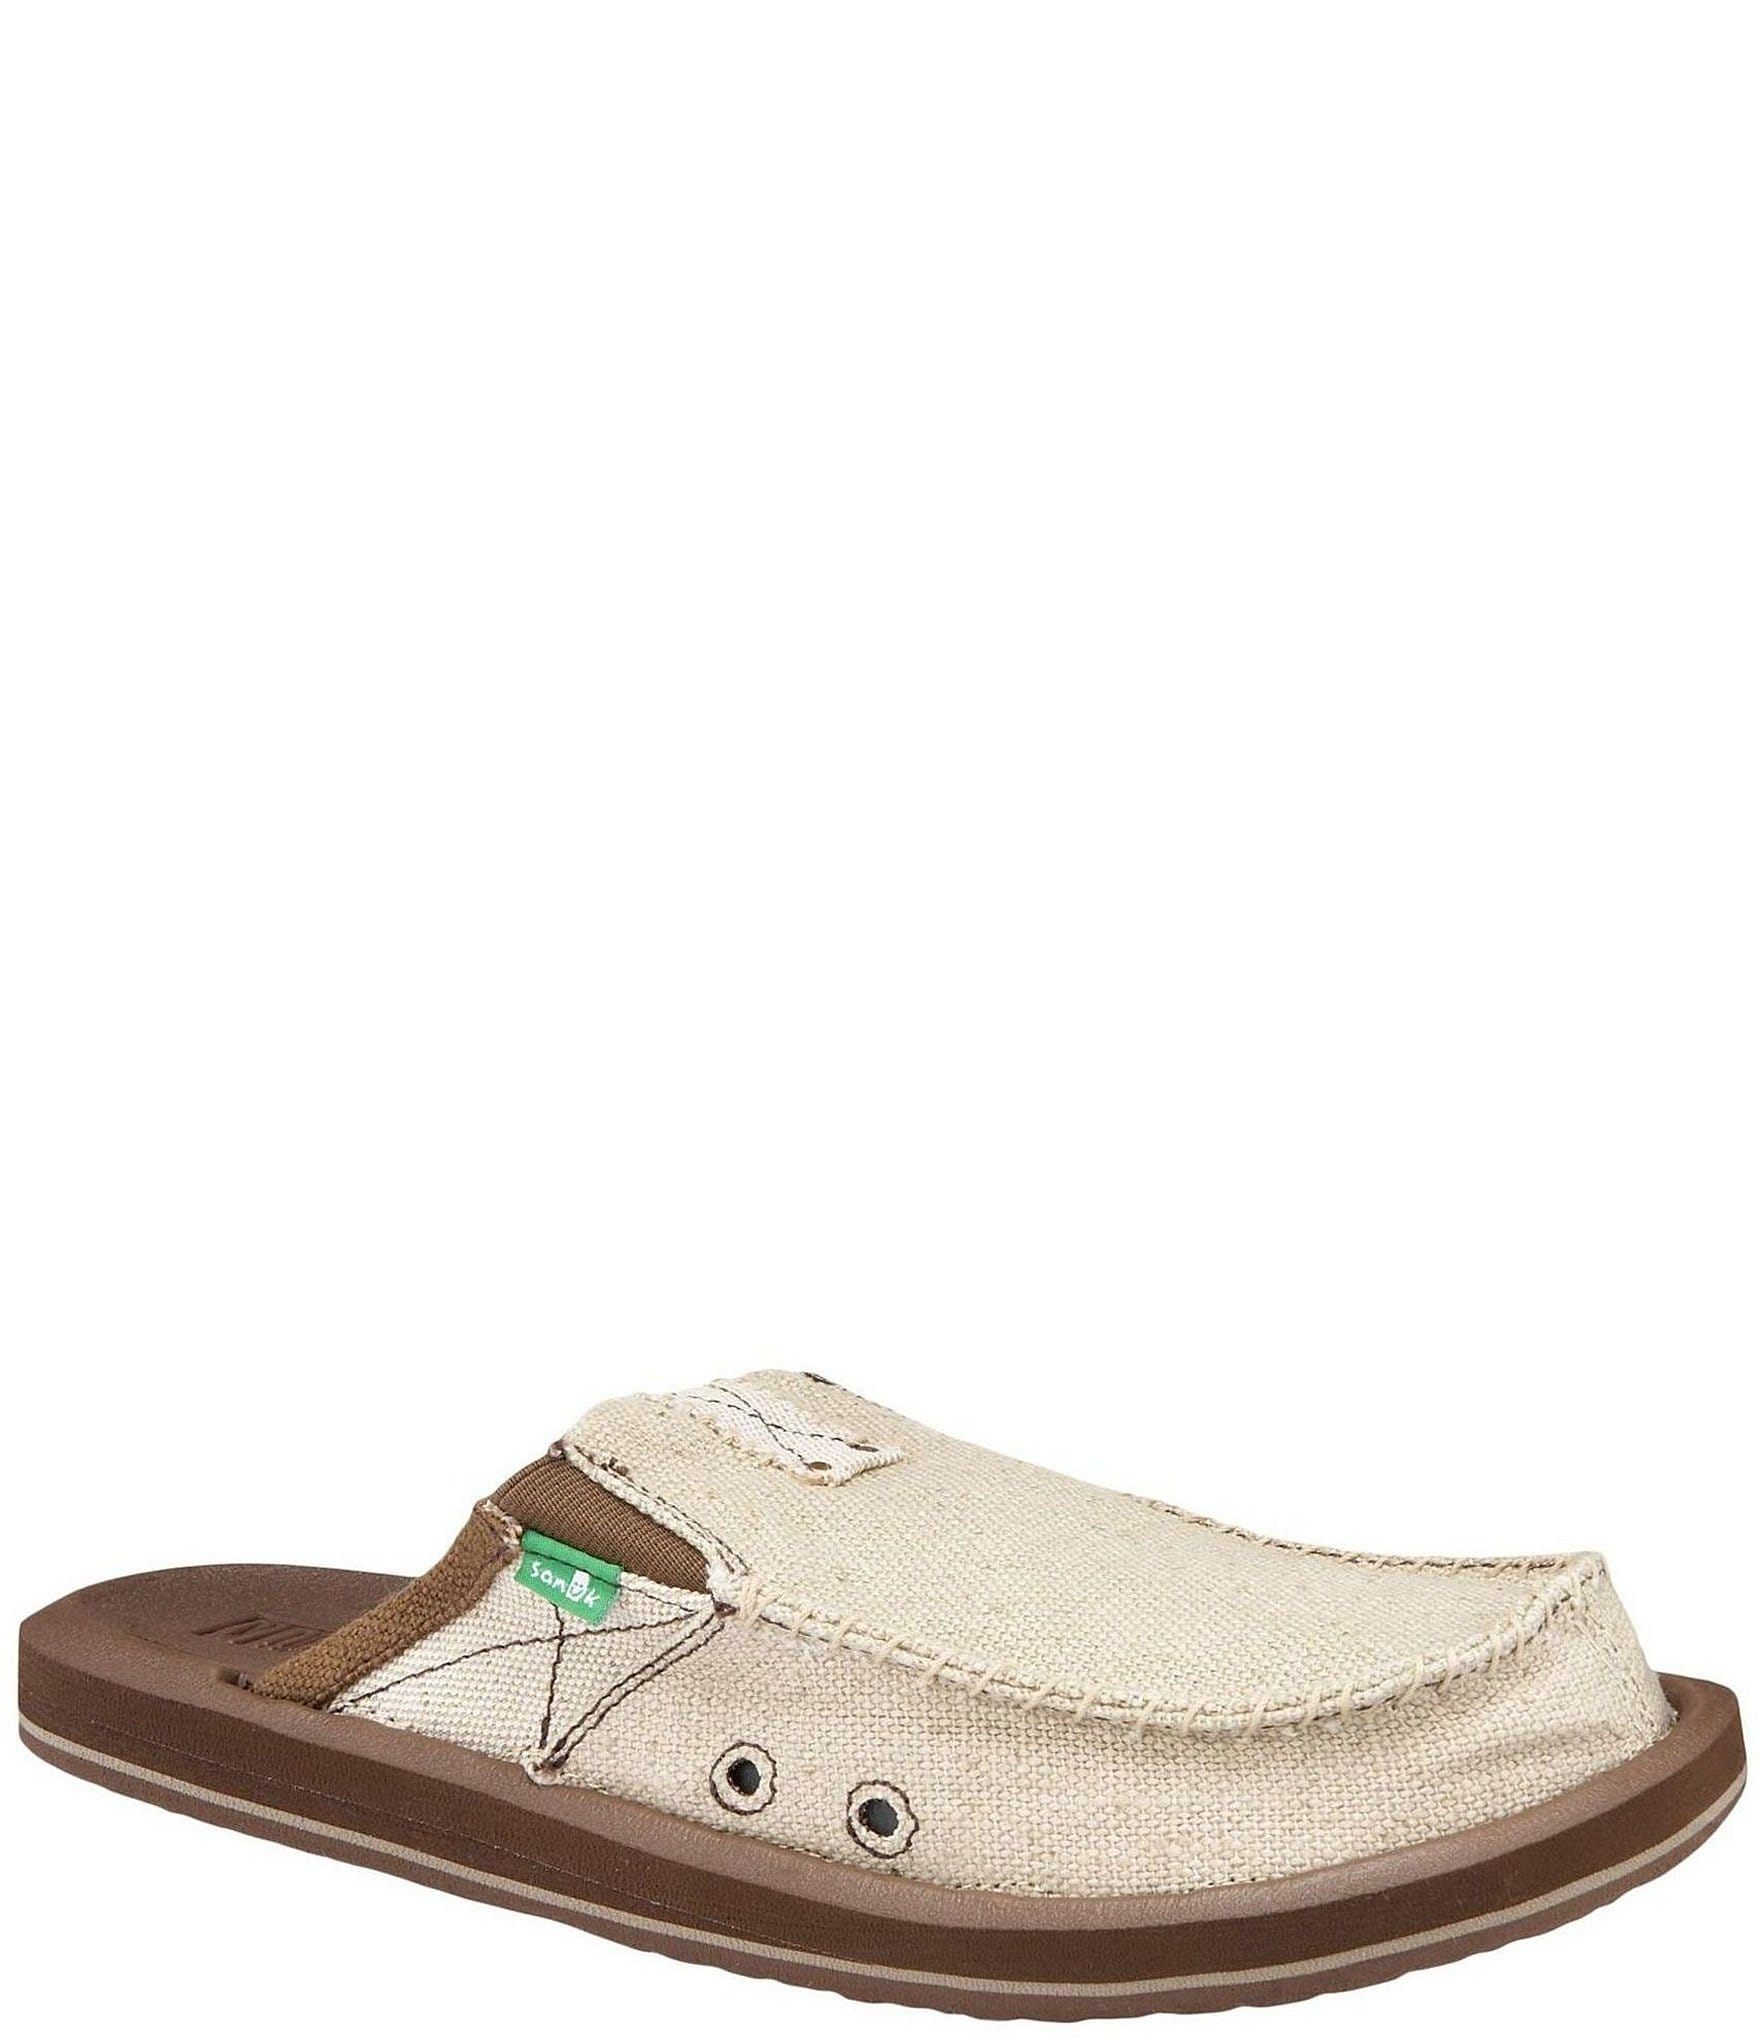 sanuk you got my back ii slip on shoes dillards